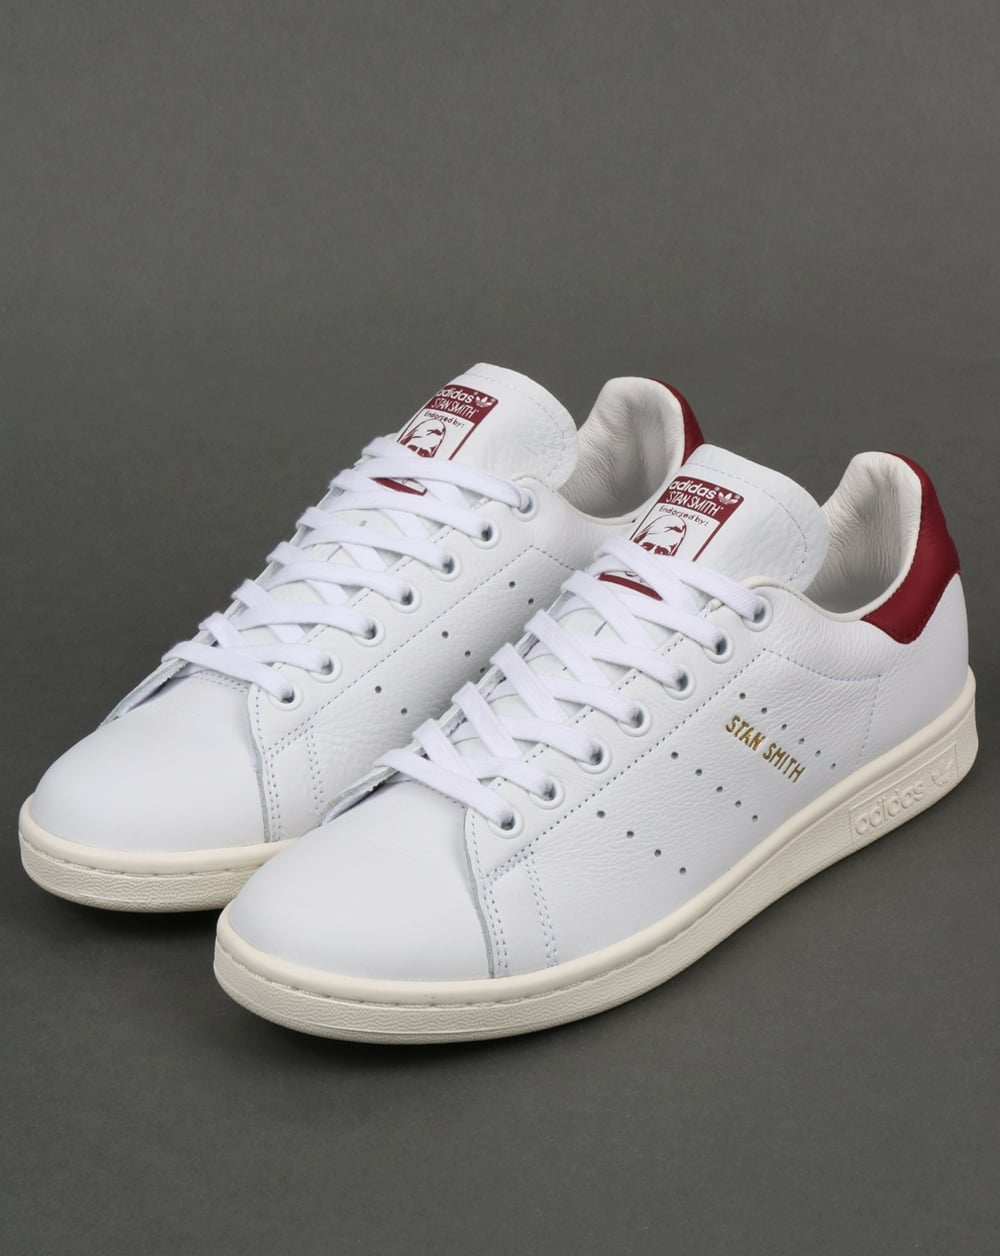 promo code 74a55 c7bd3 Adidas Stan Smith Trainers White/Burgundy